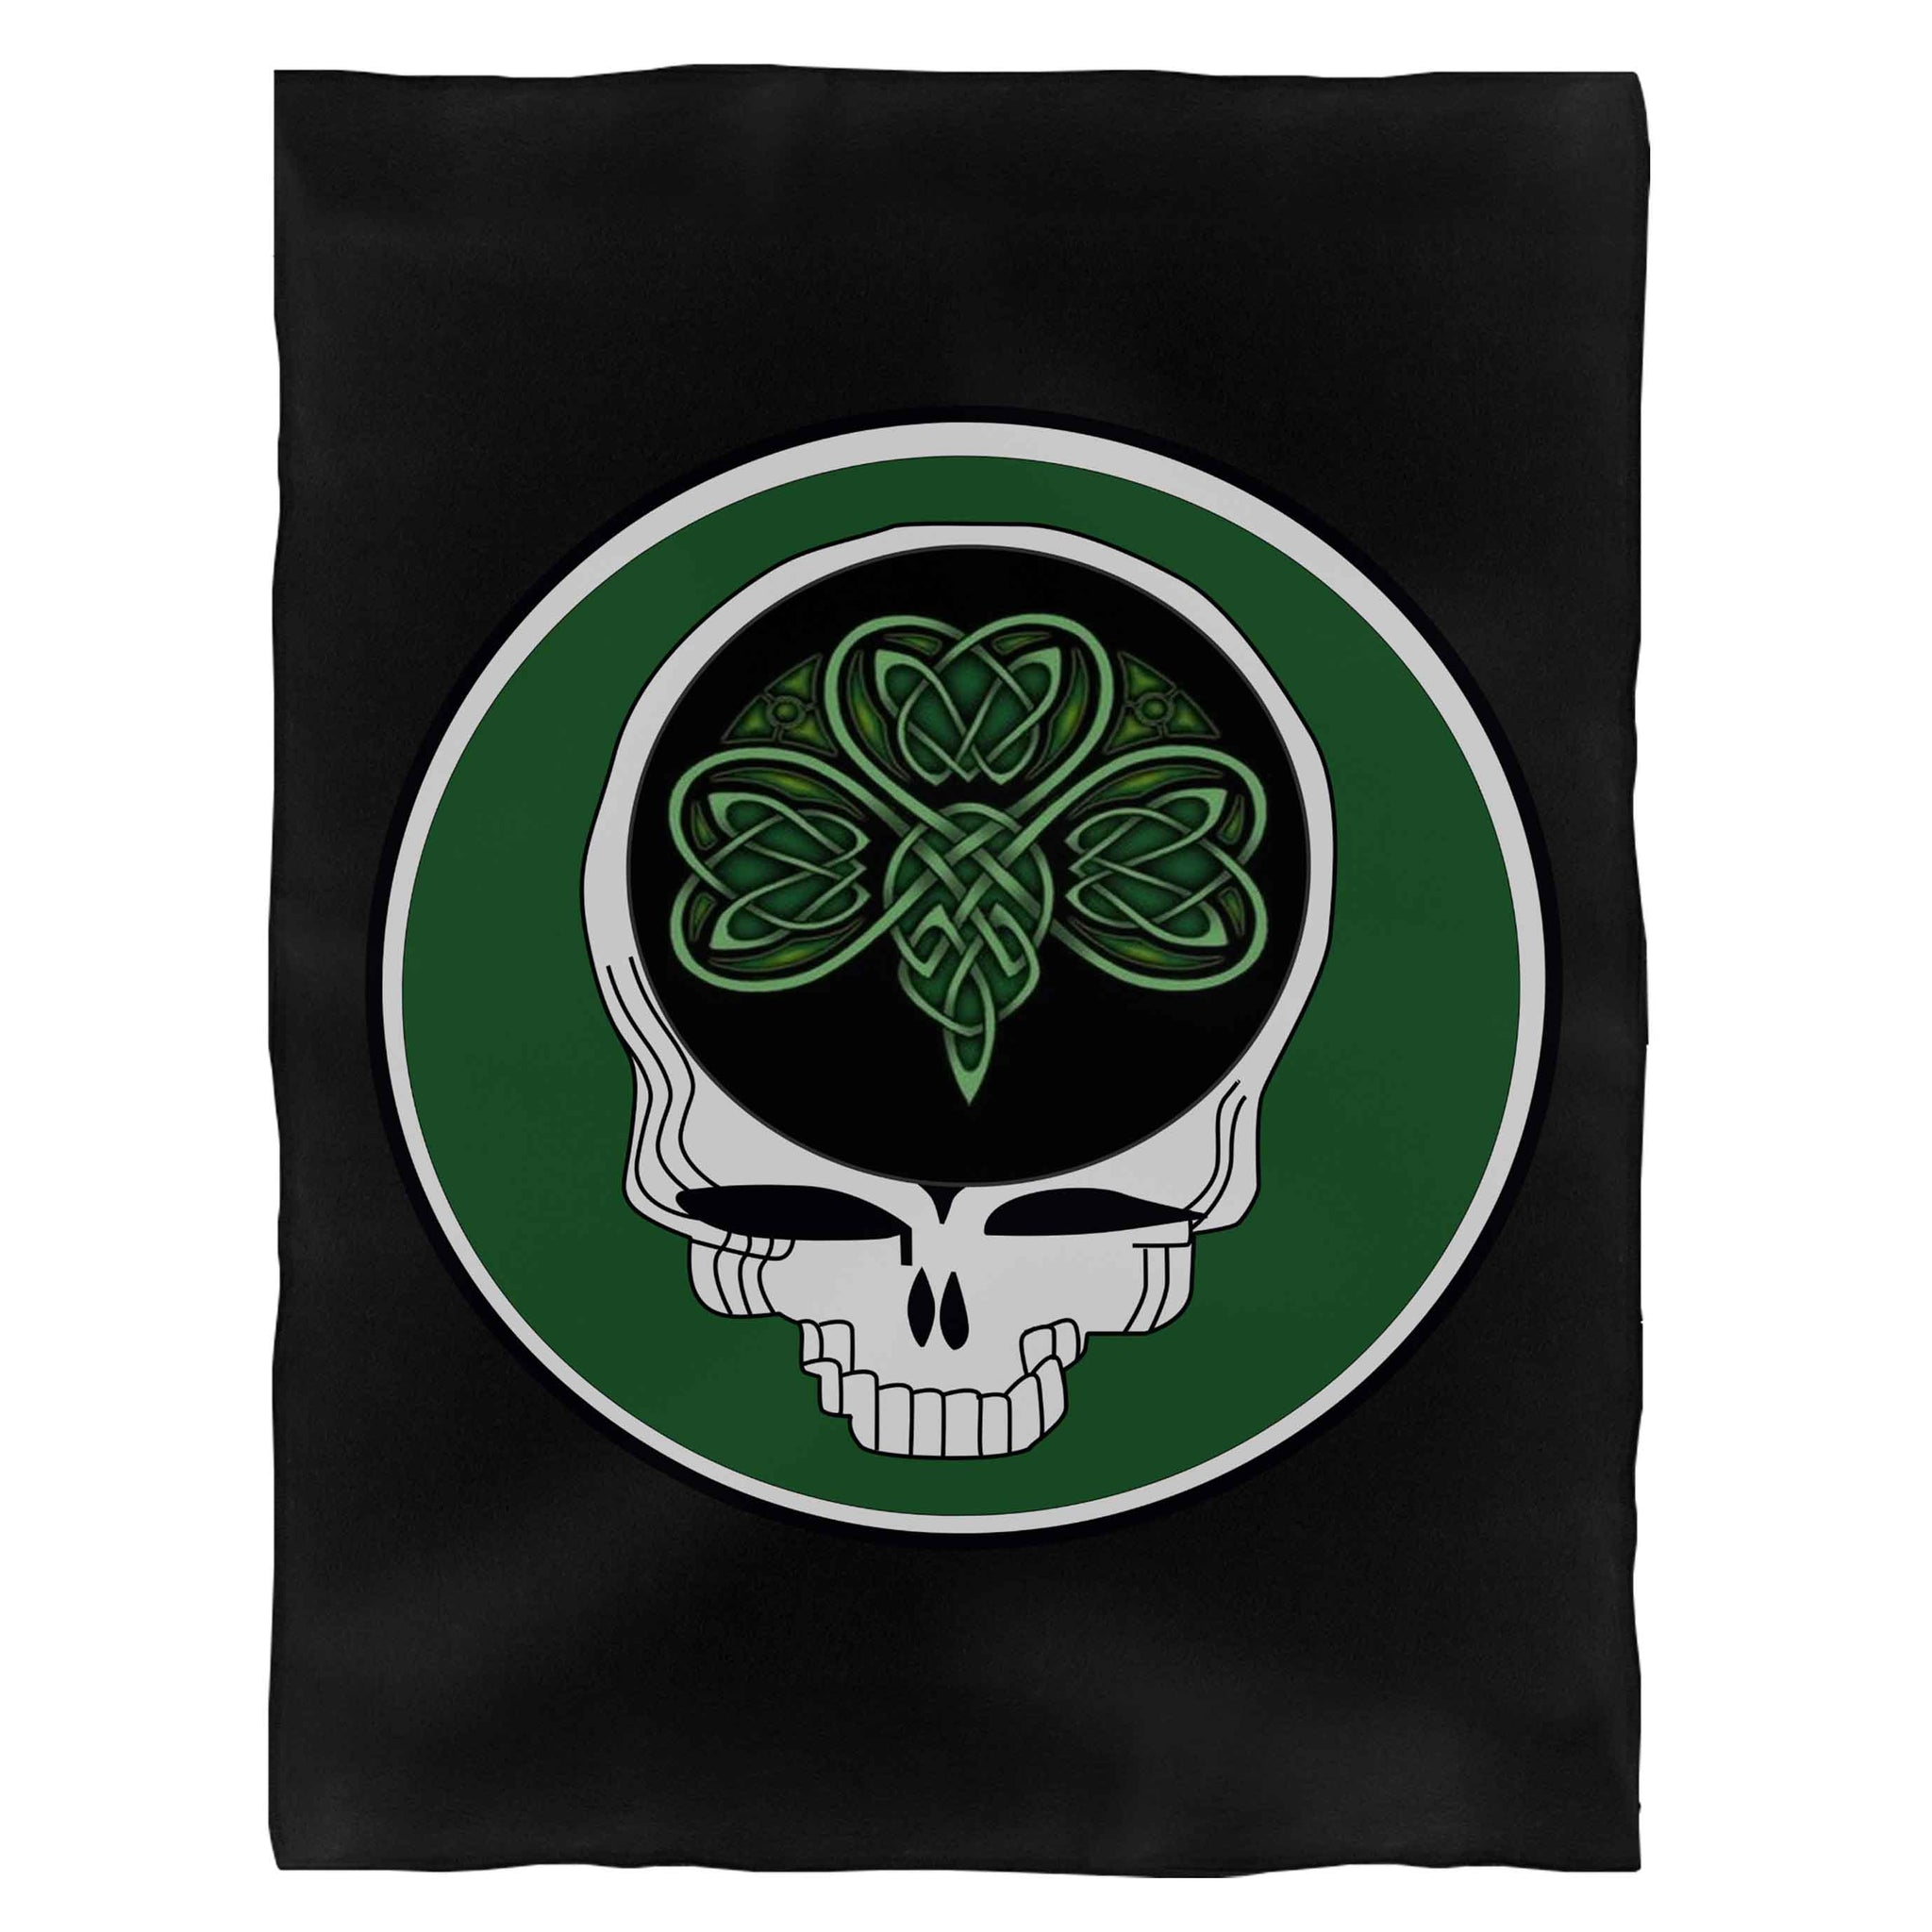 Steal Your Shamrock Celtic Knot Grateful Dead St Patrick'S Day Lot Party Fleece Blanket